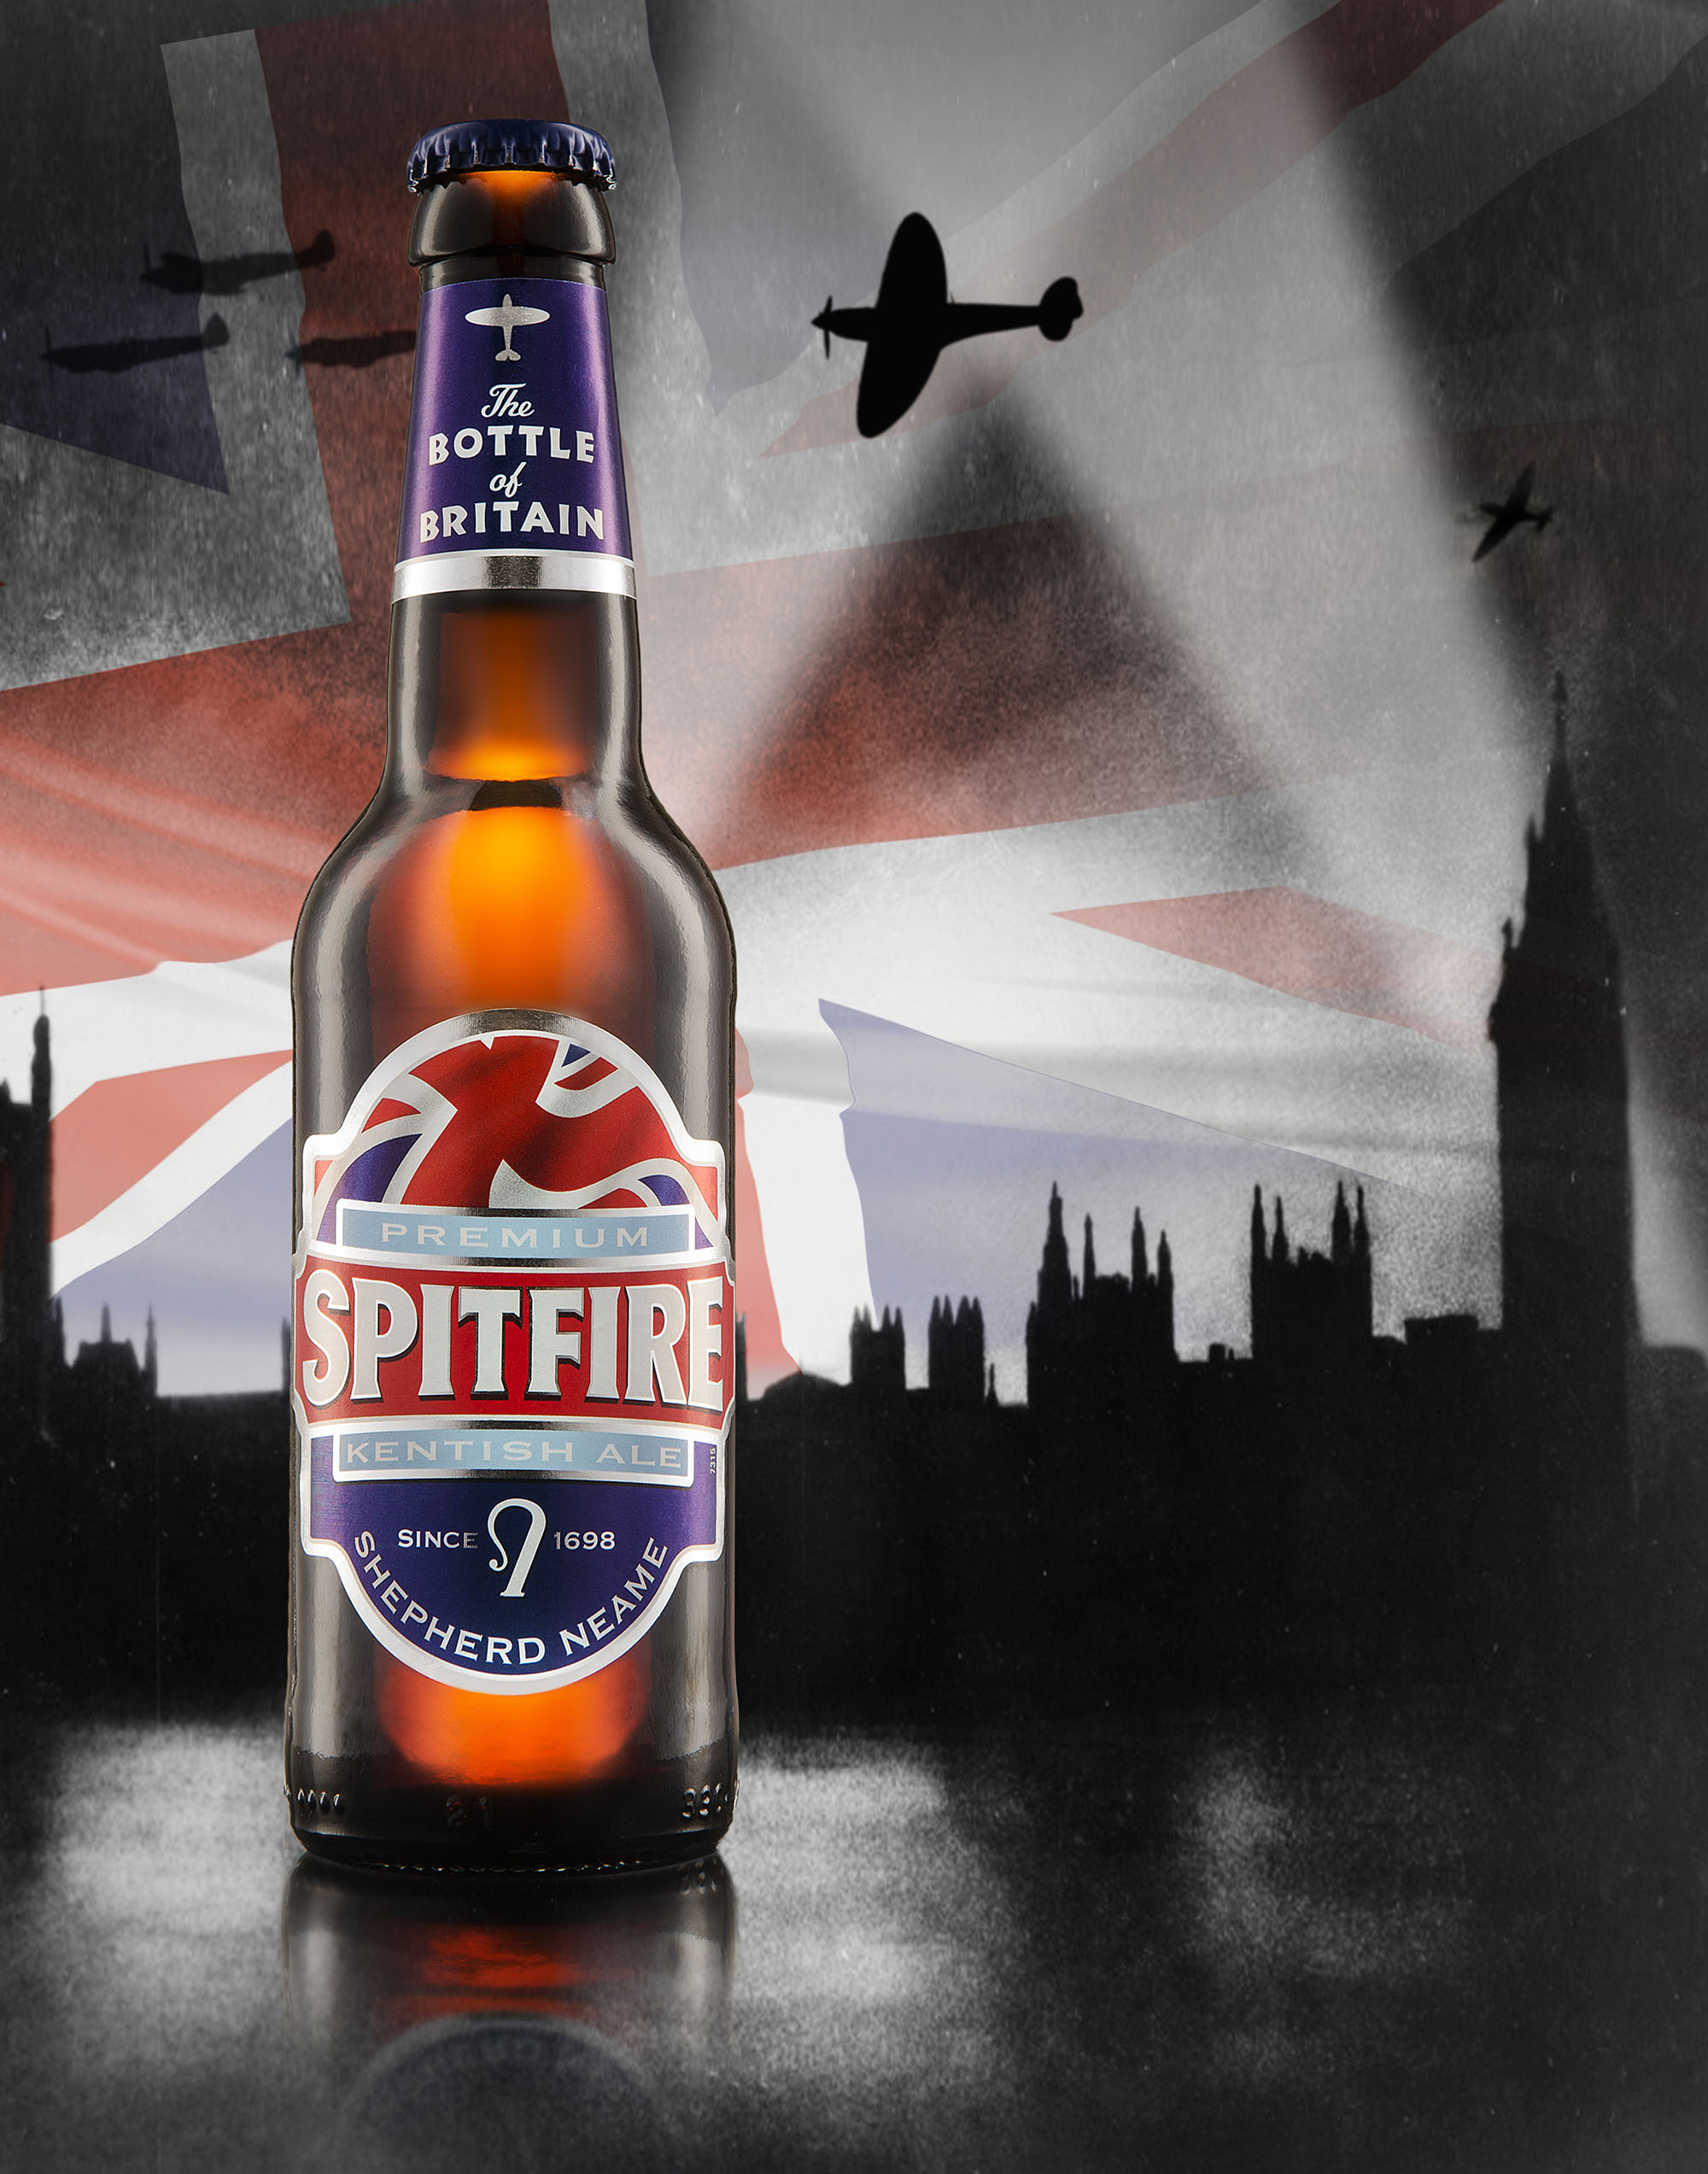 Ian Knaggs Commercial Product Photographer - Spitfire Ale Bottle